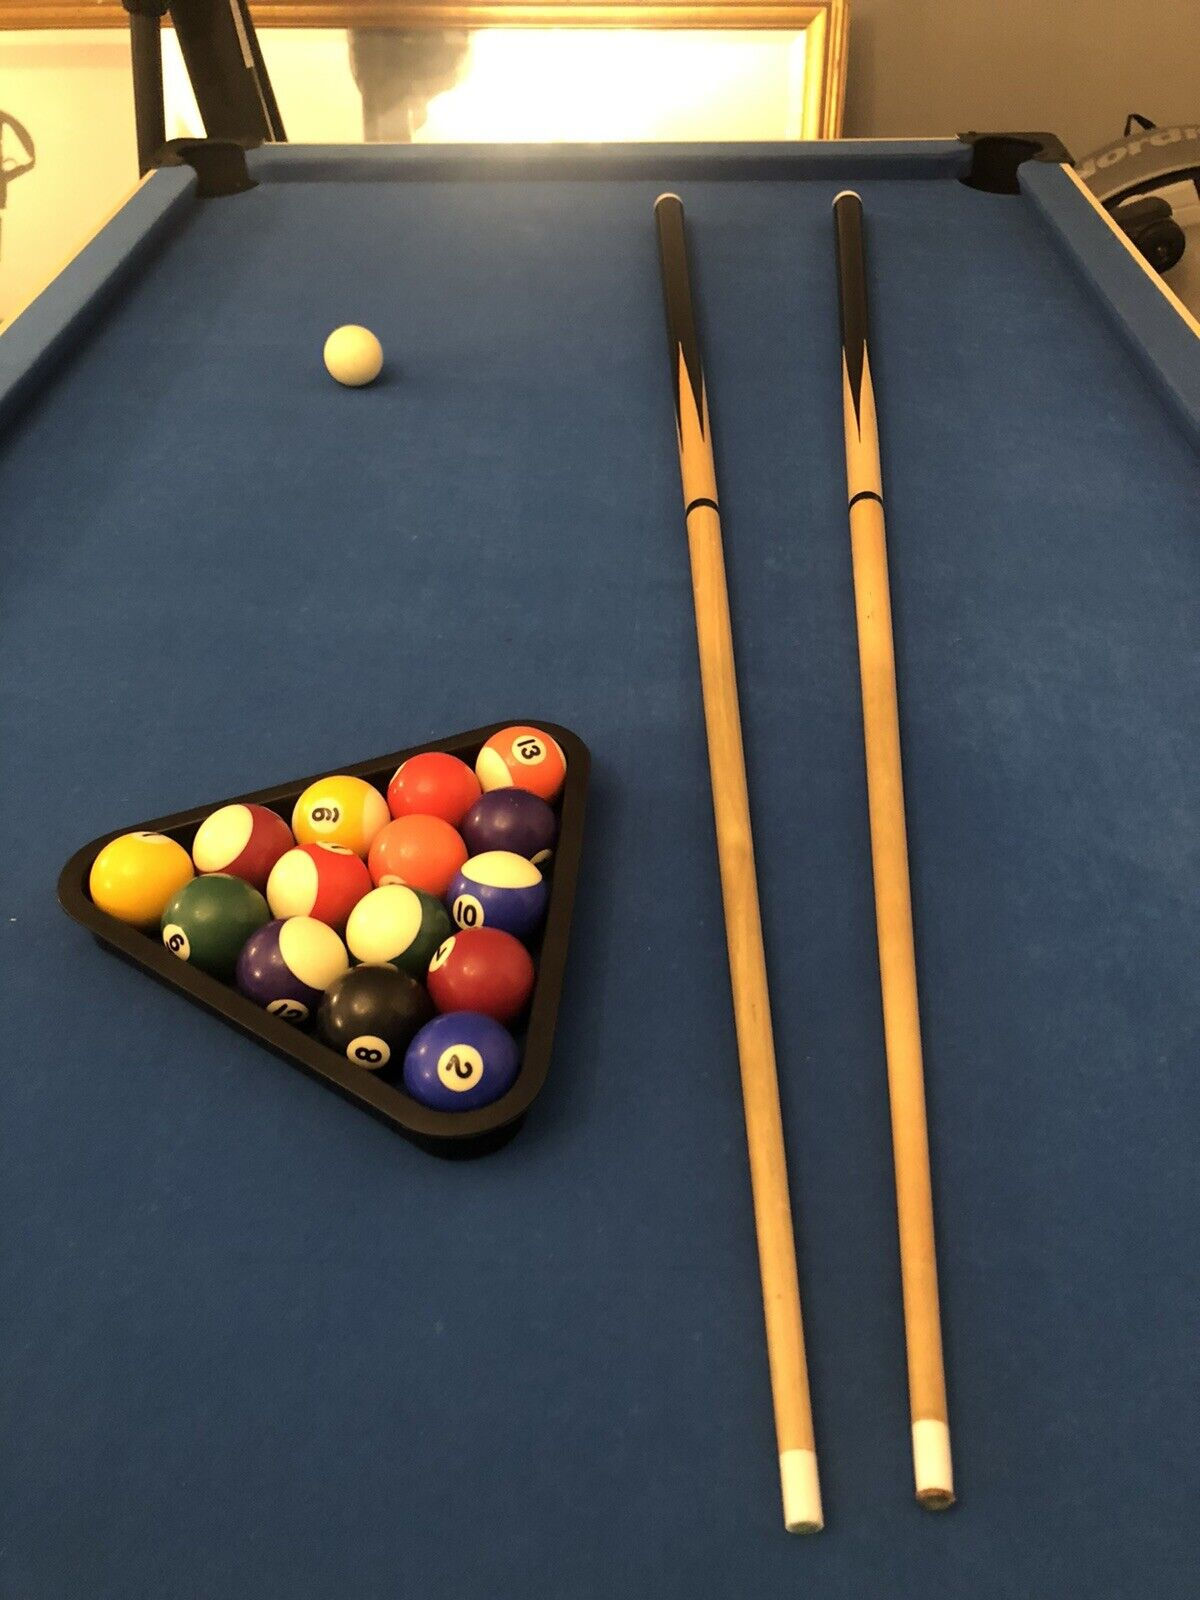 Pool table 6ft With pool balls, triangle and two cues (one with missing tip)